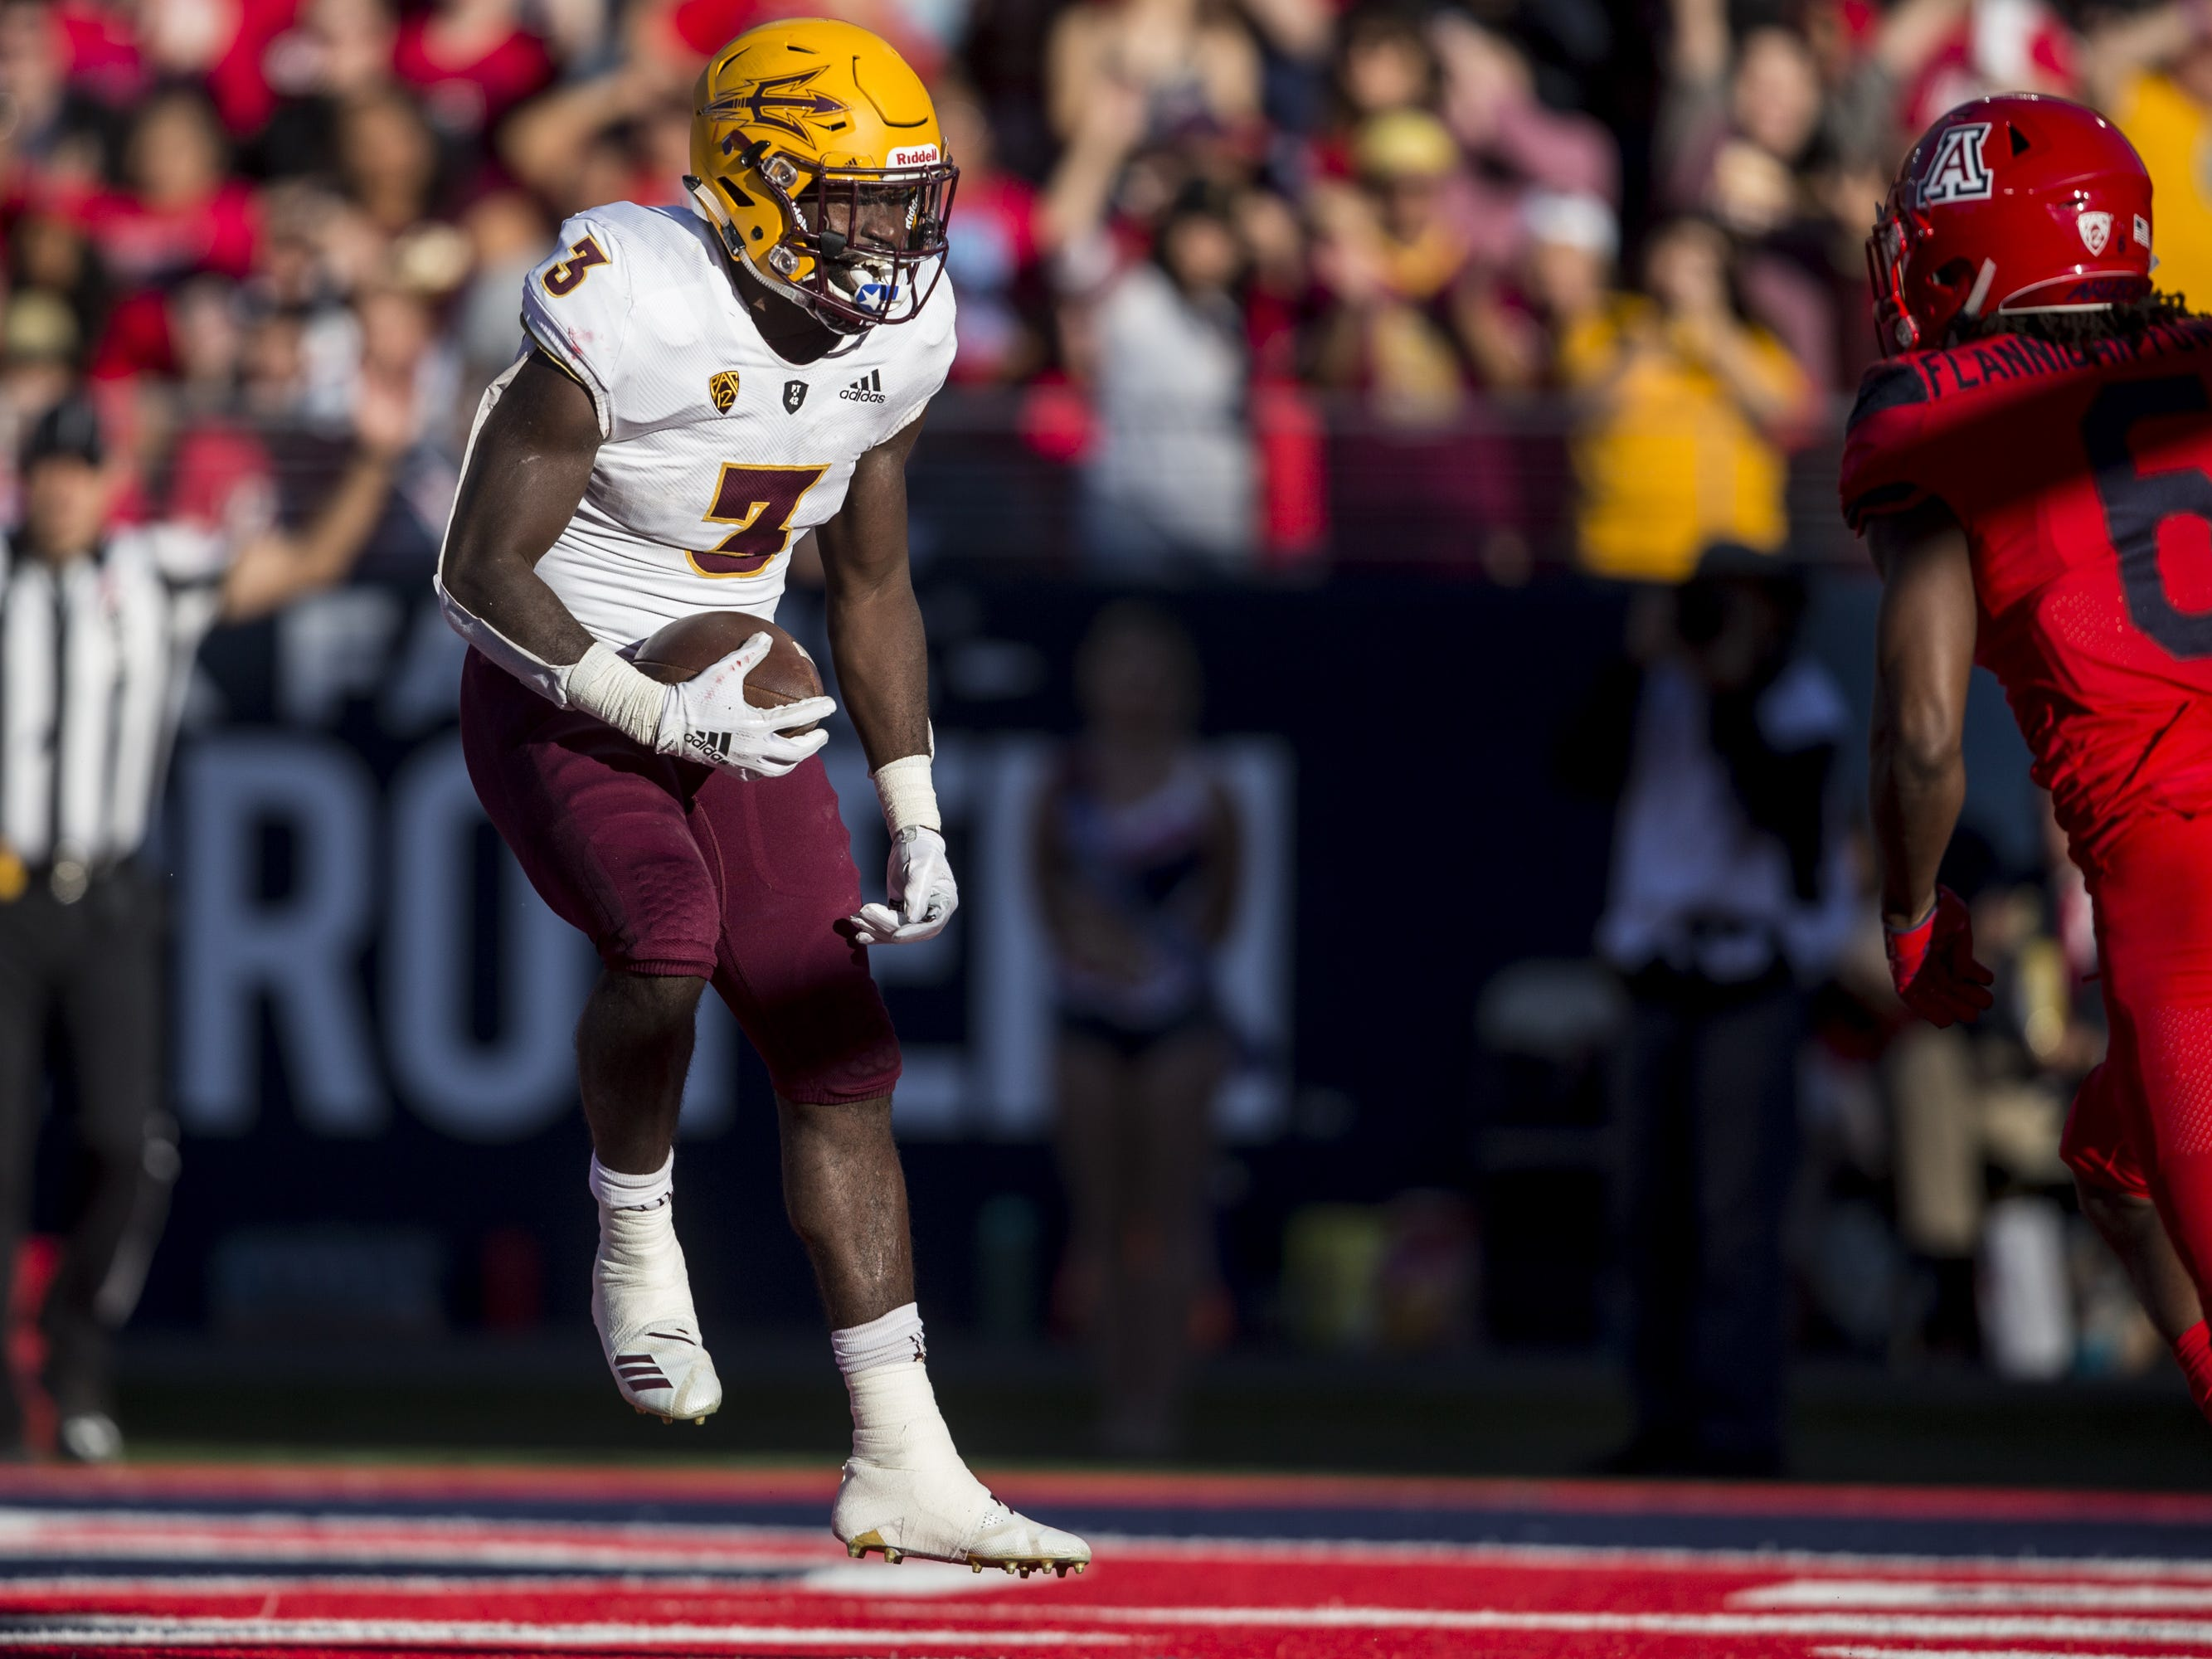 Arizona State's Eno Benjamin celebrates after rushing for a touchdown against Arizona during the second half of the Territorial Cup on Saturday, Nov. 24, 2018, at Arizona Stadium in Tucson, Ariz. Arizona State won, 41-40.